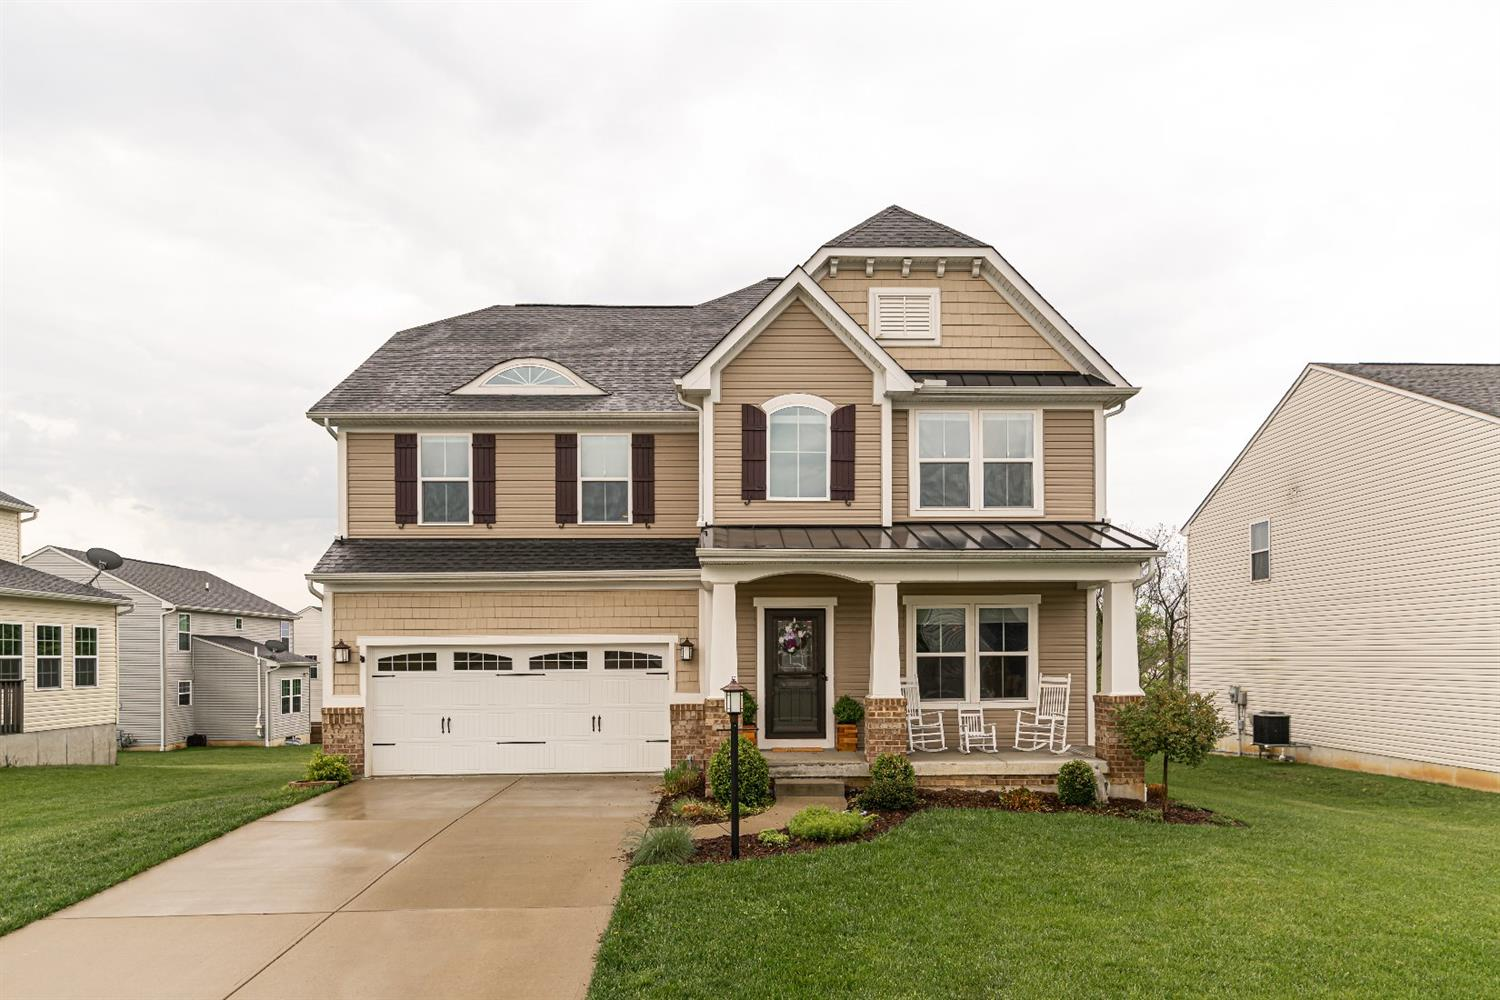 Property for sale at 7949 Valley Crossing Drive, Colerain Twp,  Ohio 45247